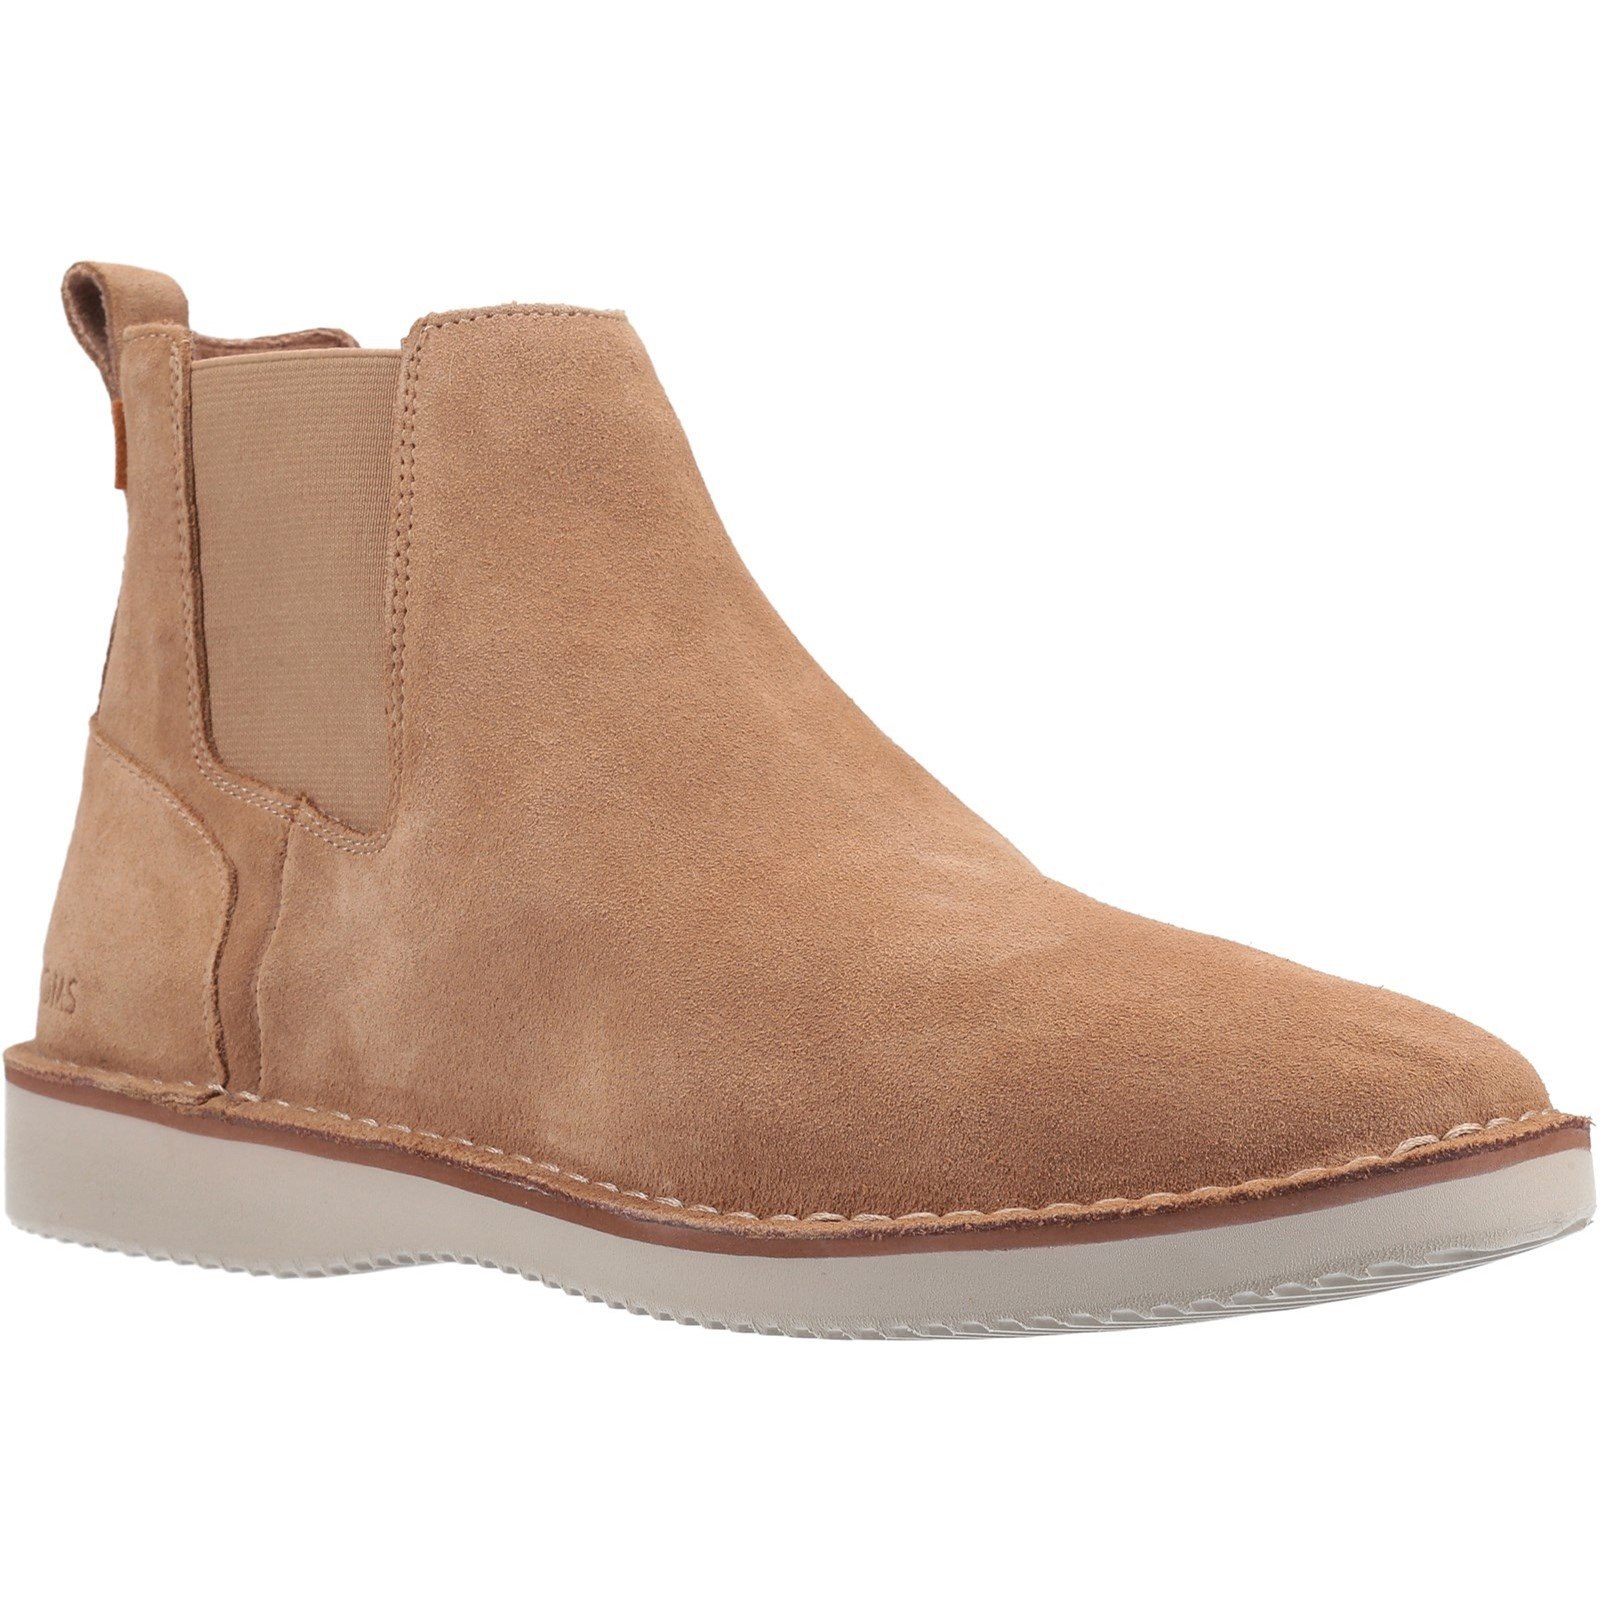 TOMS Men's Skyline Lace Up Boot Toffee 31608 - Toffee 8